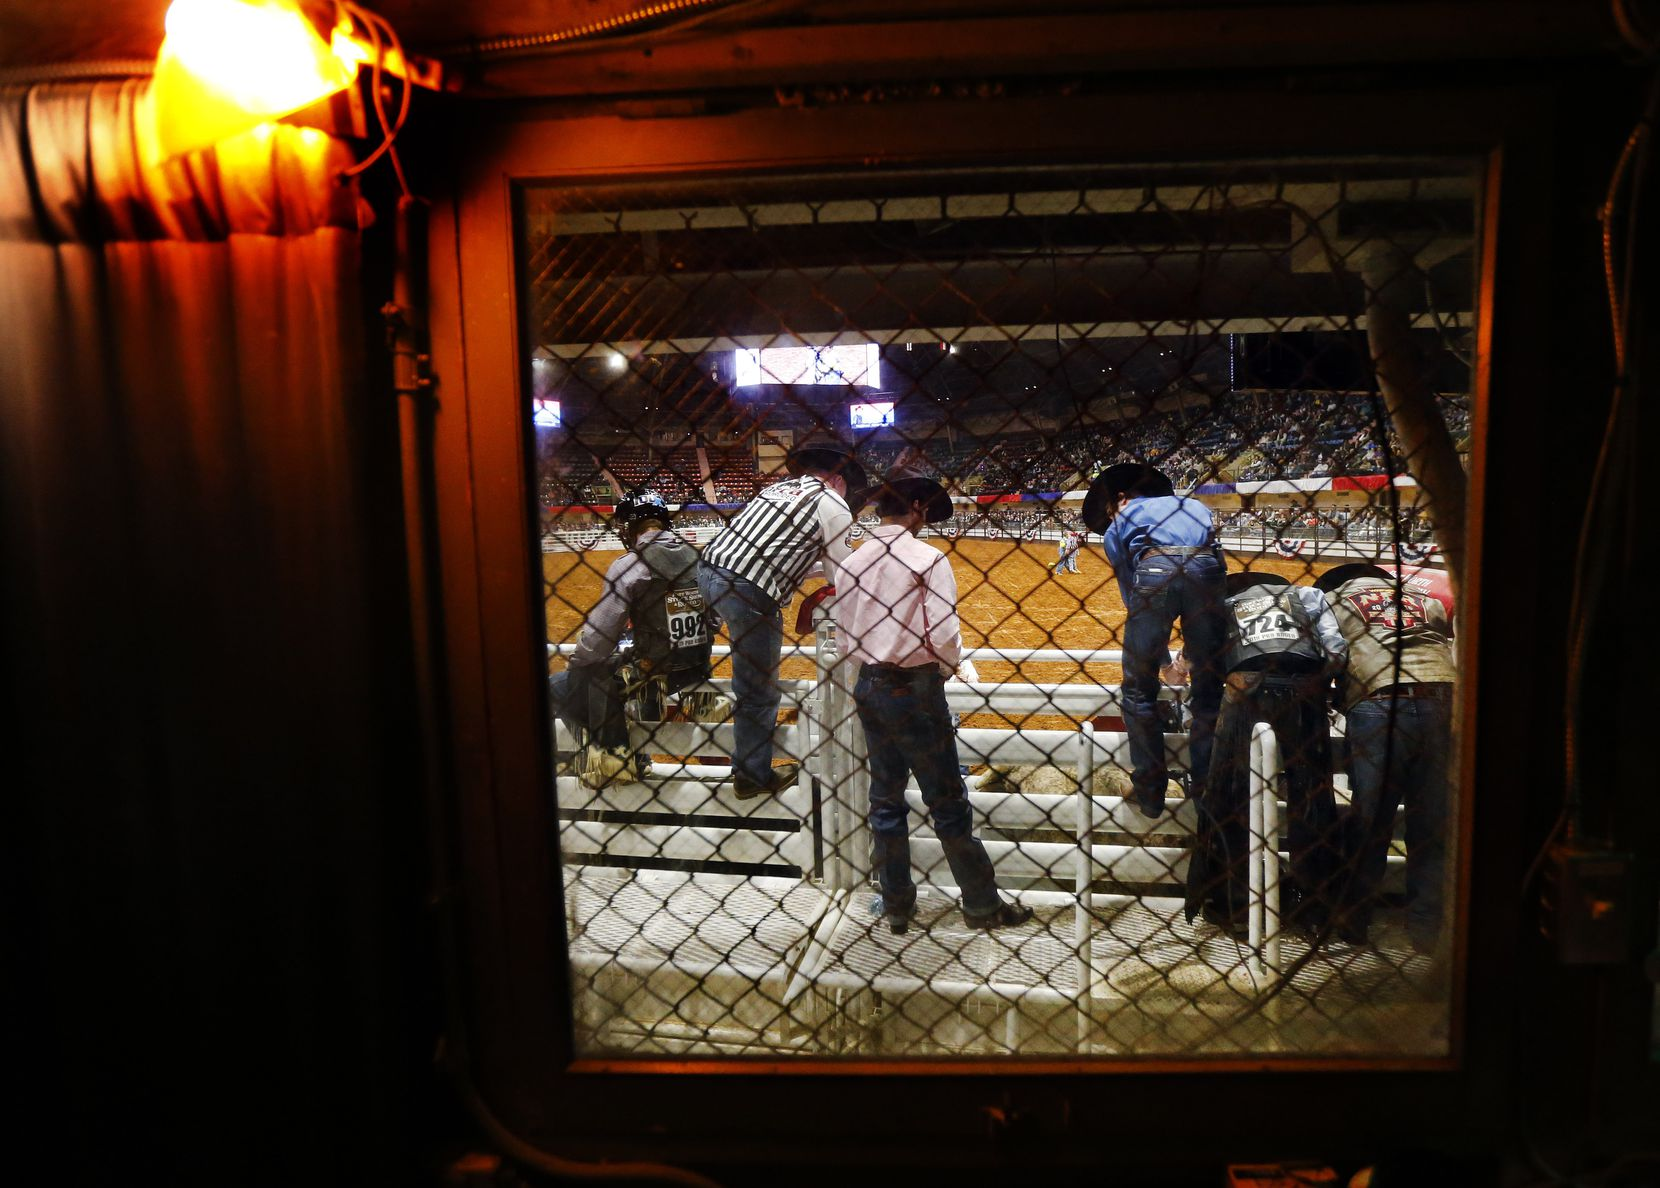 Bull riders on the bucking chutes are seen through the fence protected windows of the lower sound booth of Will Rogers Memorial Coliseum at the Fort Worth Stock Show and Rodeo in Fort Worth, Wednesday, January 30, 2019.